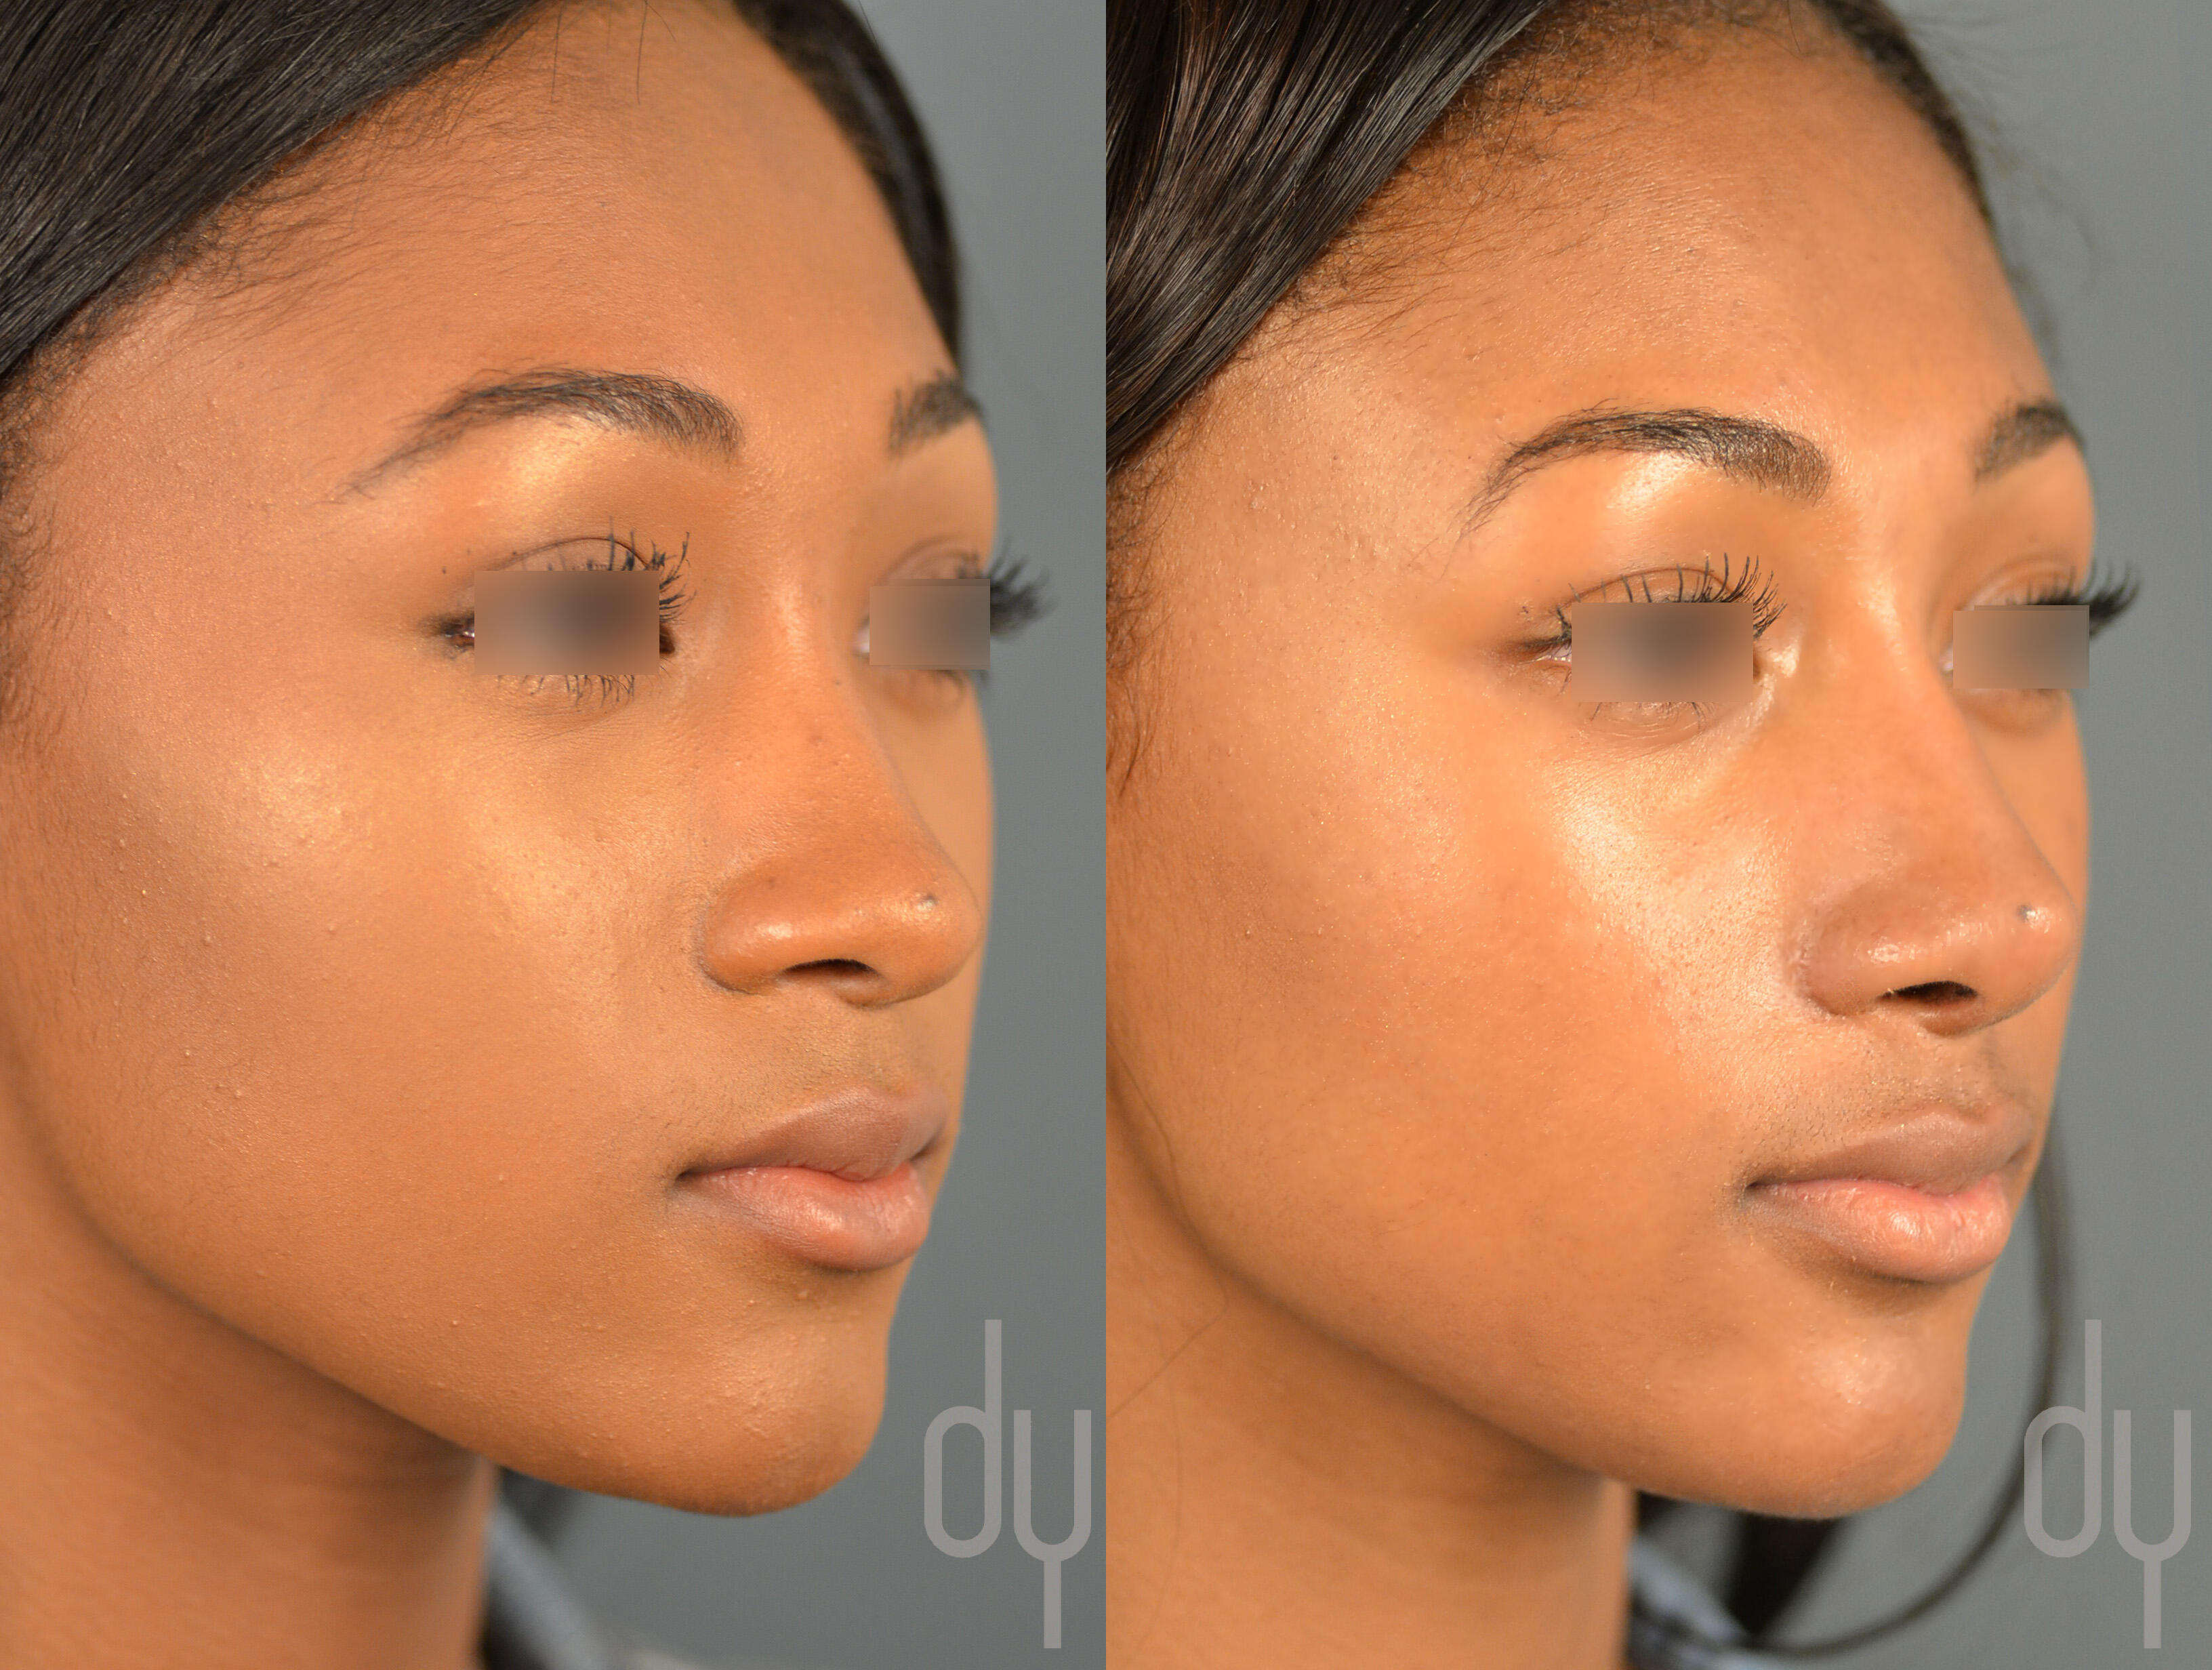 rhinoplasty a surgical procedure Rhinoplasty overview jay m dutton, md facs introduction the term rhinoplasty refers to surgery performed to alter the structure of the external nose, and is commonly referred to as a nose job.